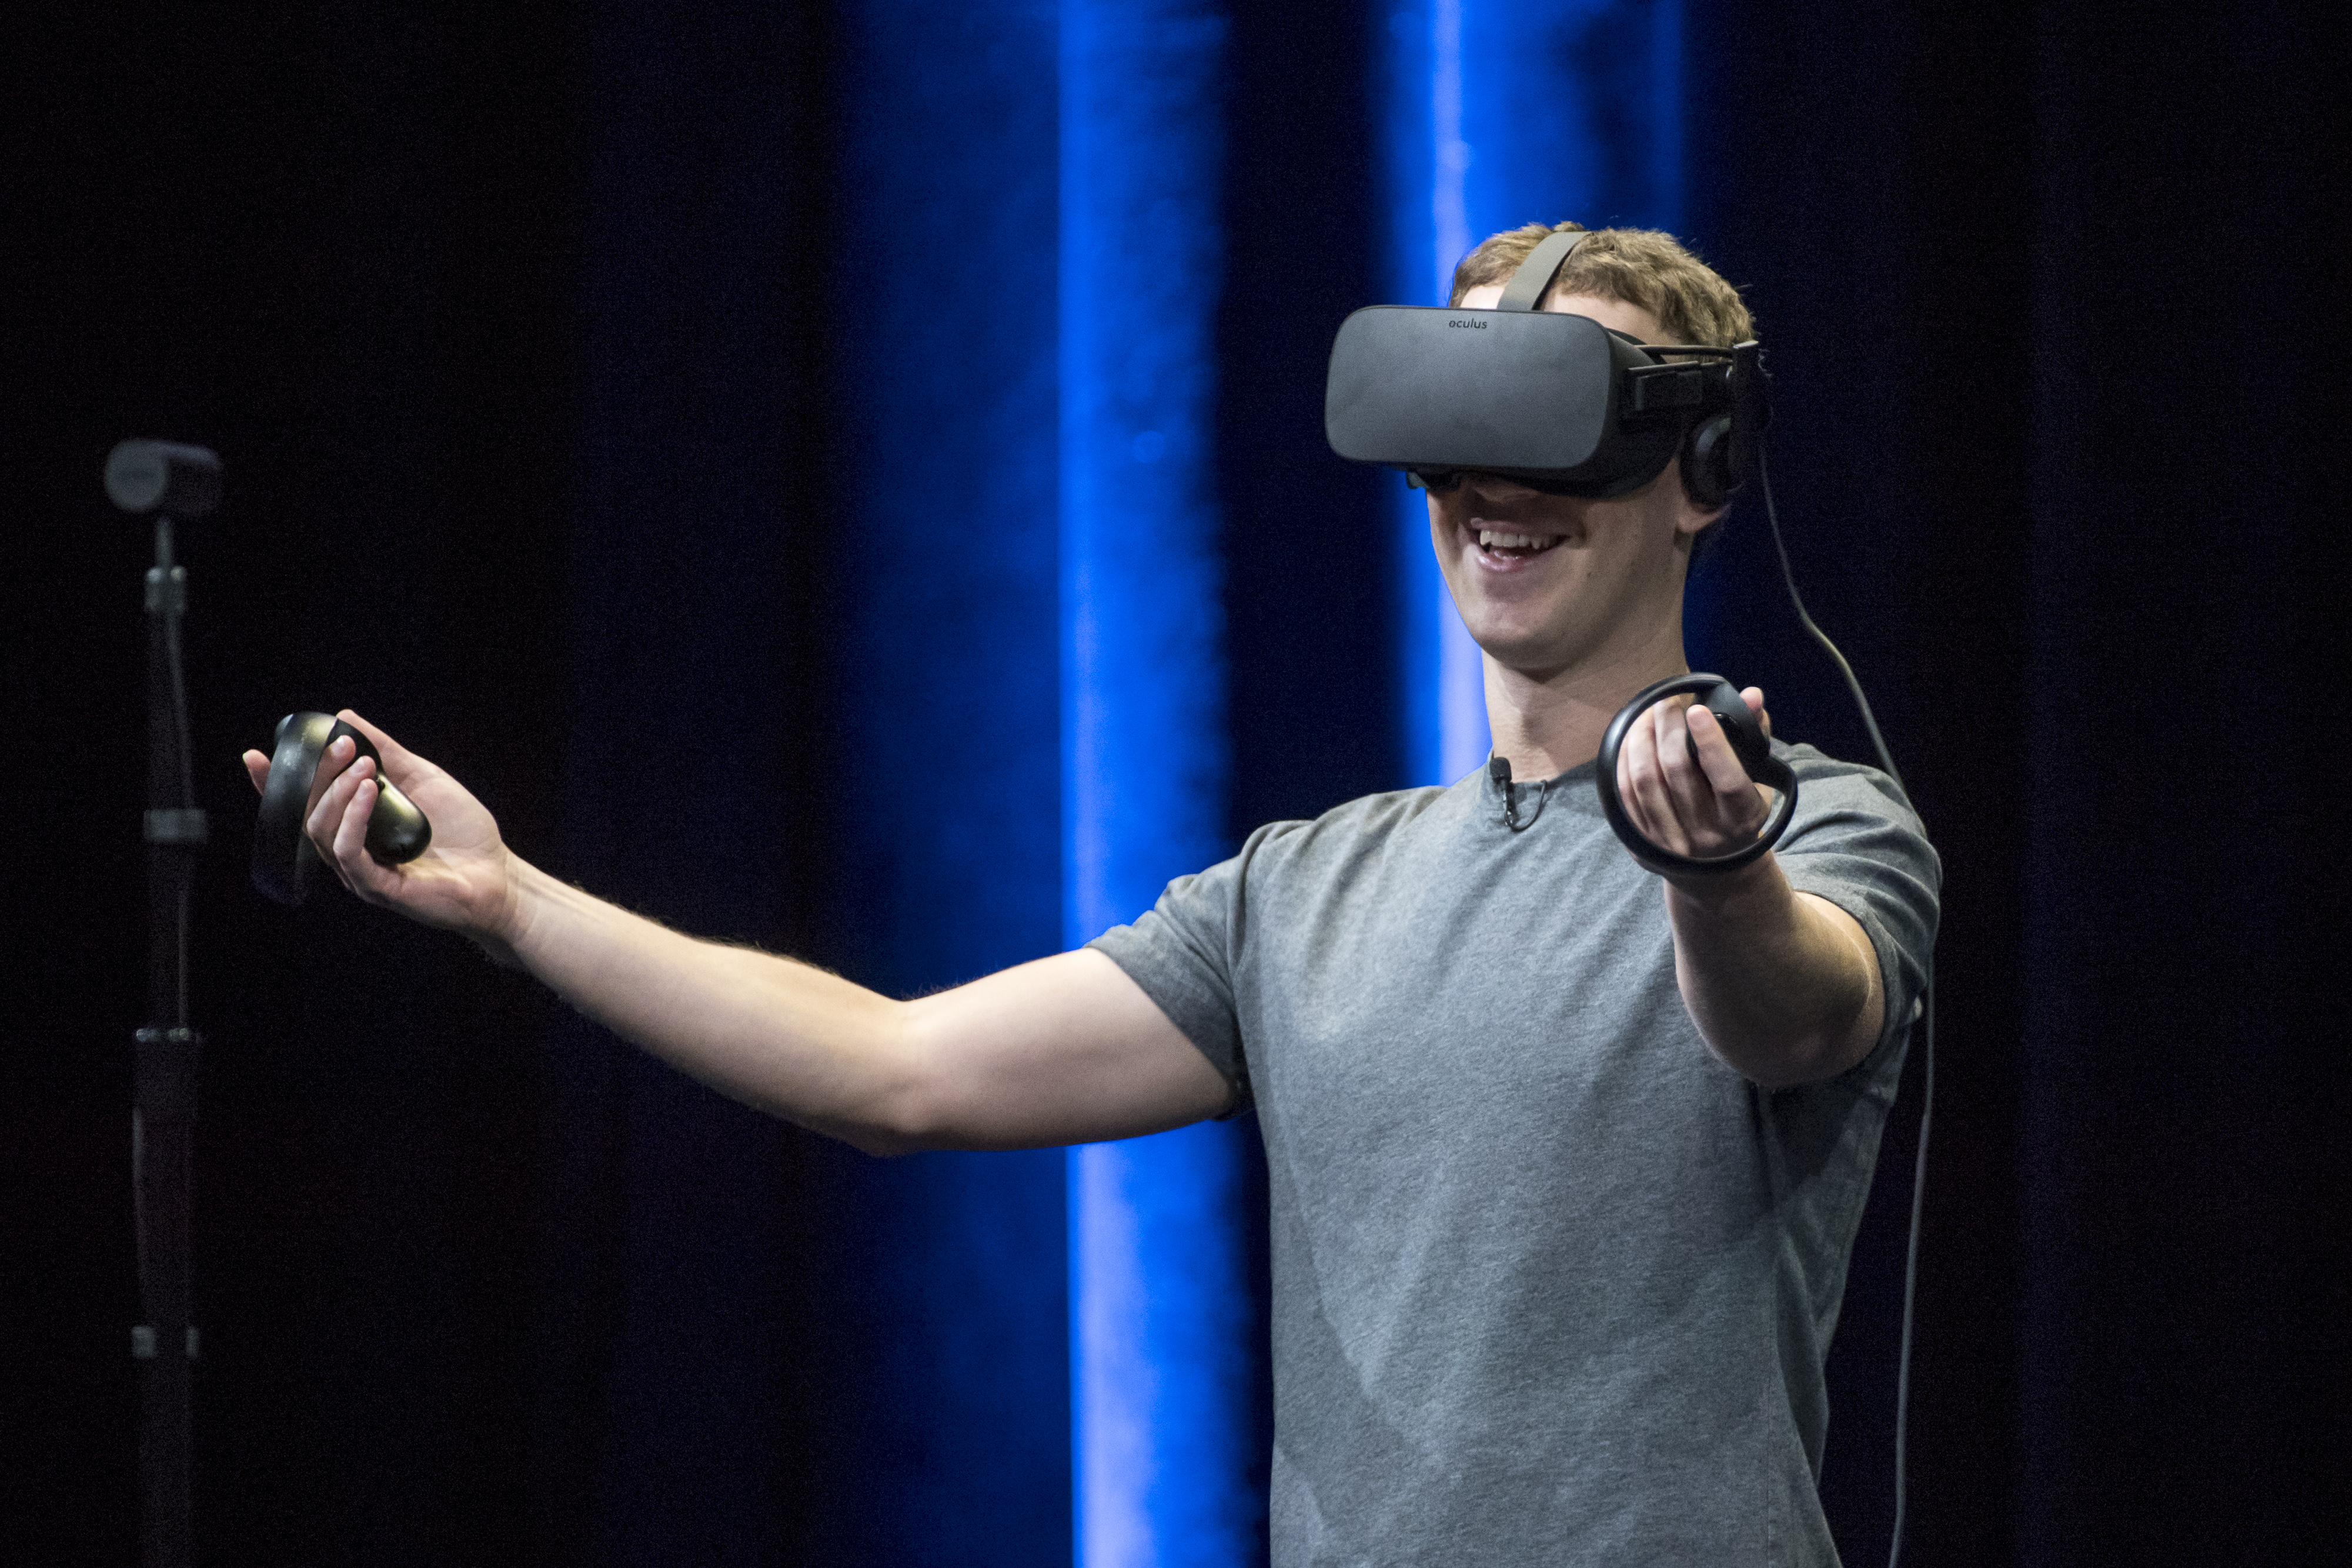 Inside The Oculus Connect 3 Event